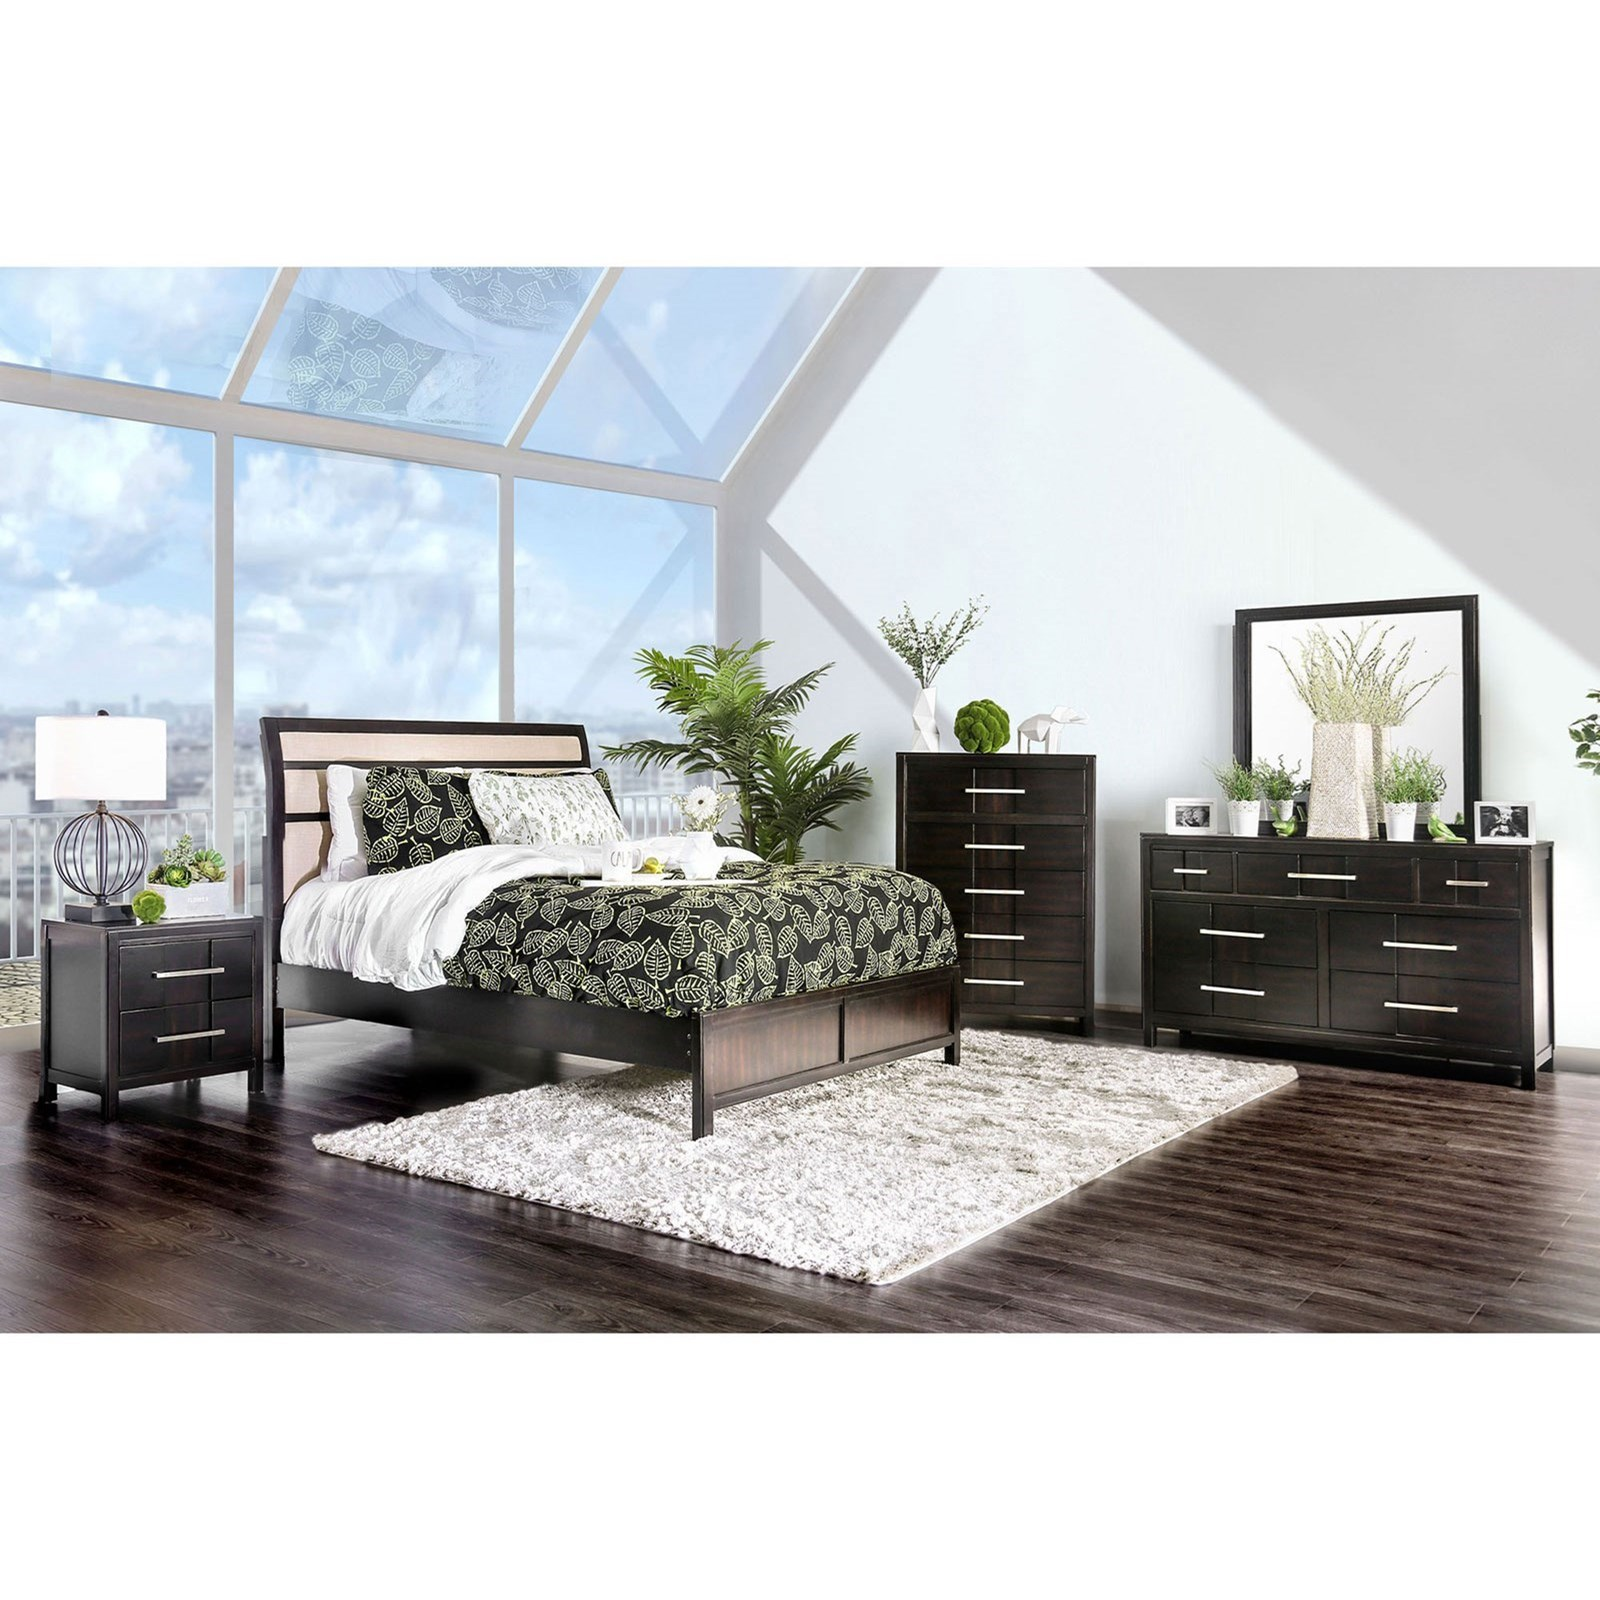 Berenice Queen Bedroom Group at Household Furniture